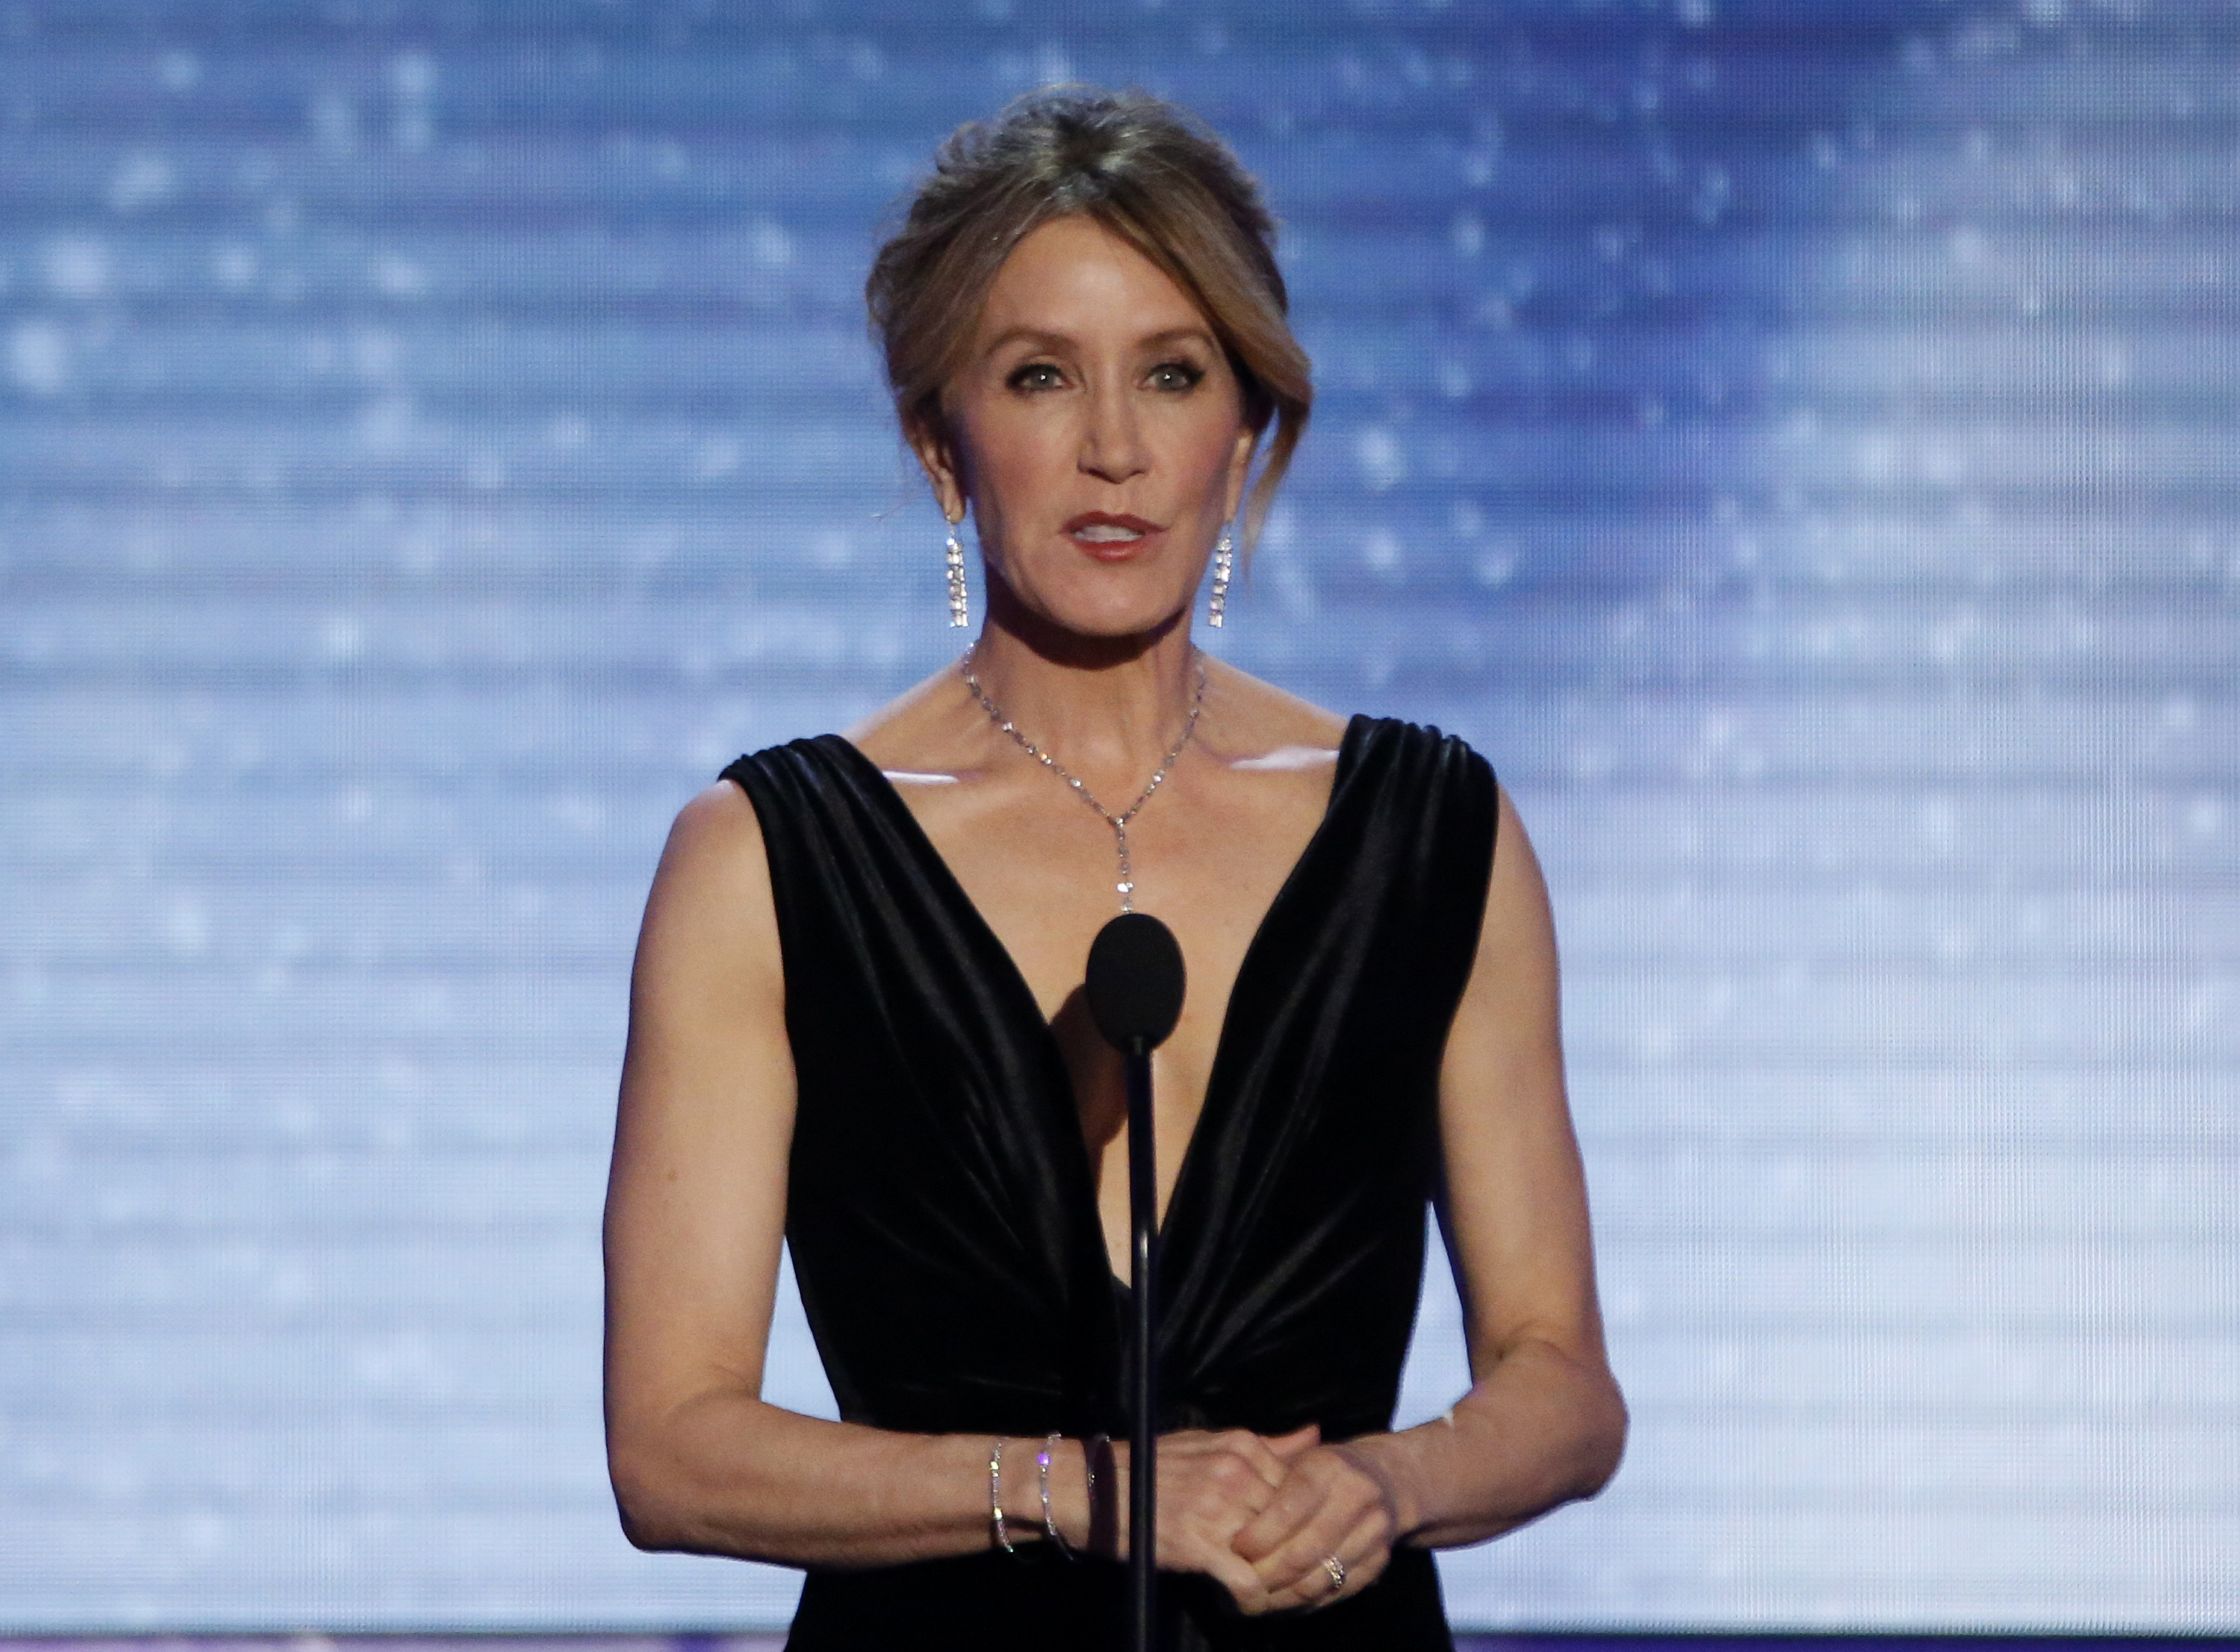 Felicity Huffman speaks on stage. REUTERS/Mario Anzuoni